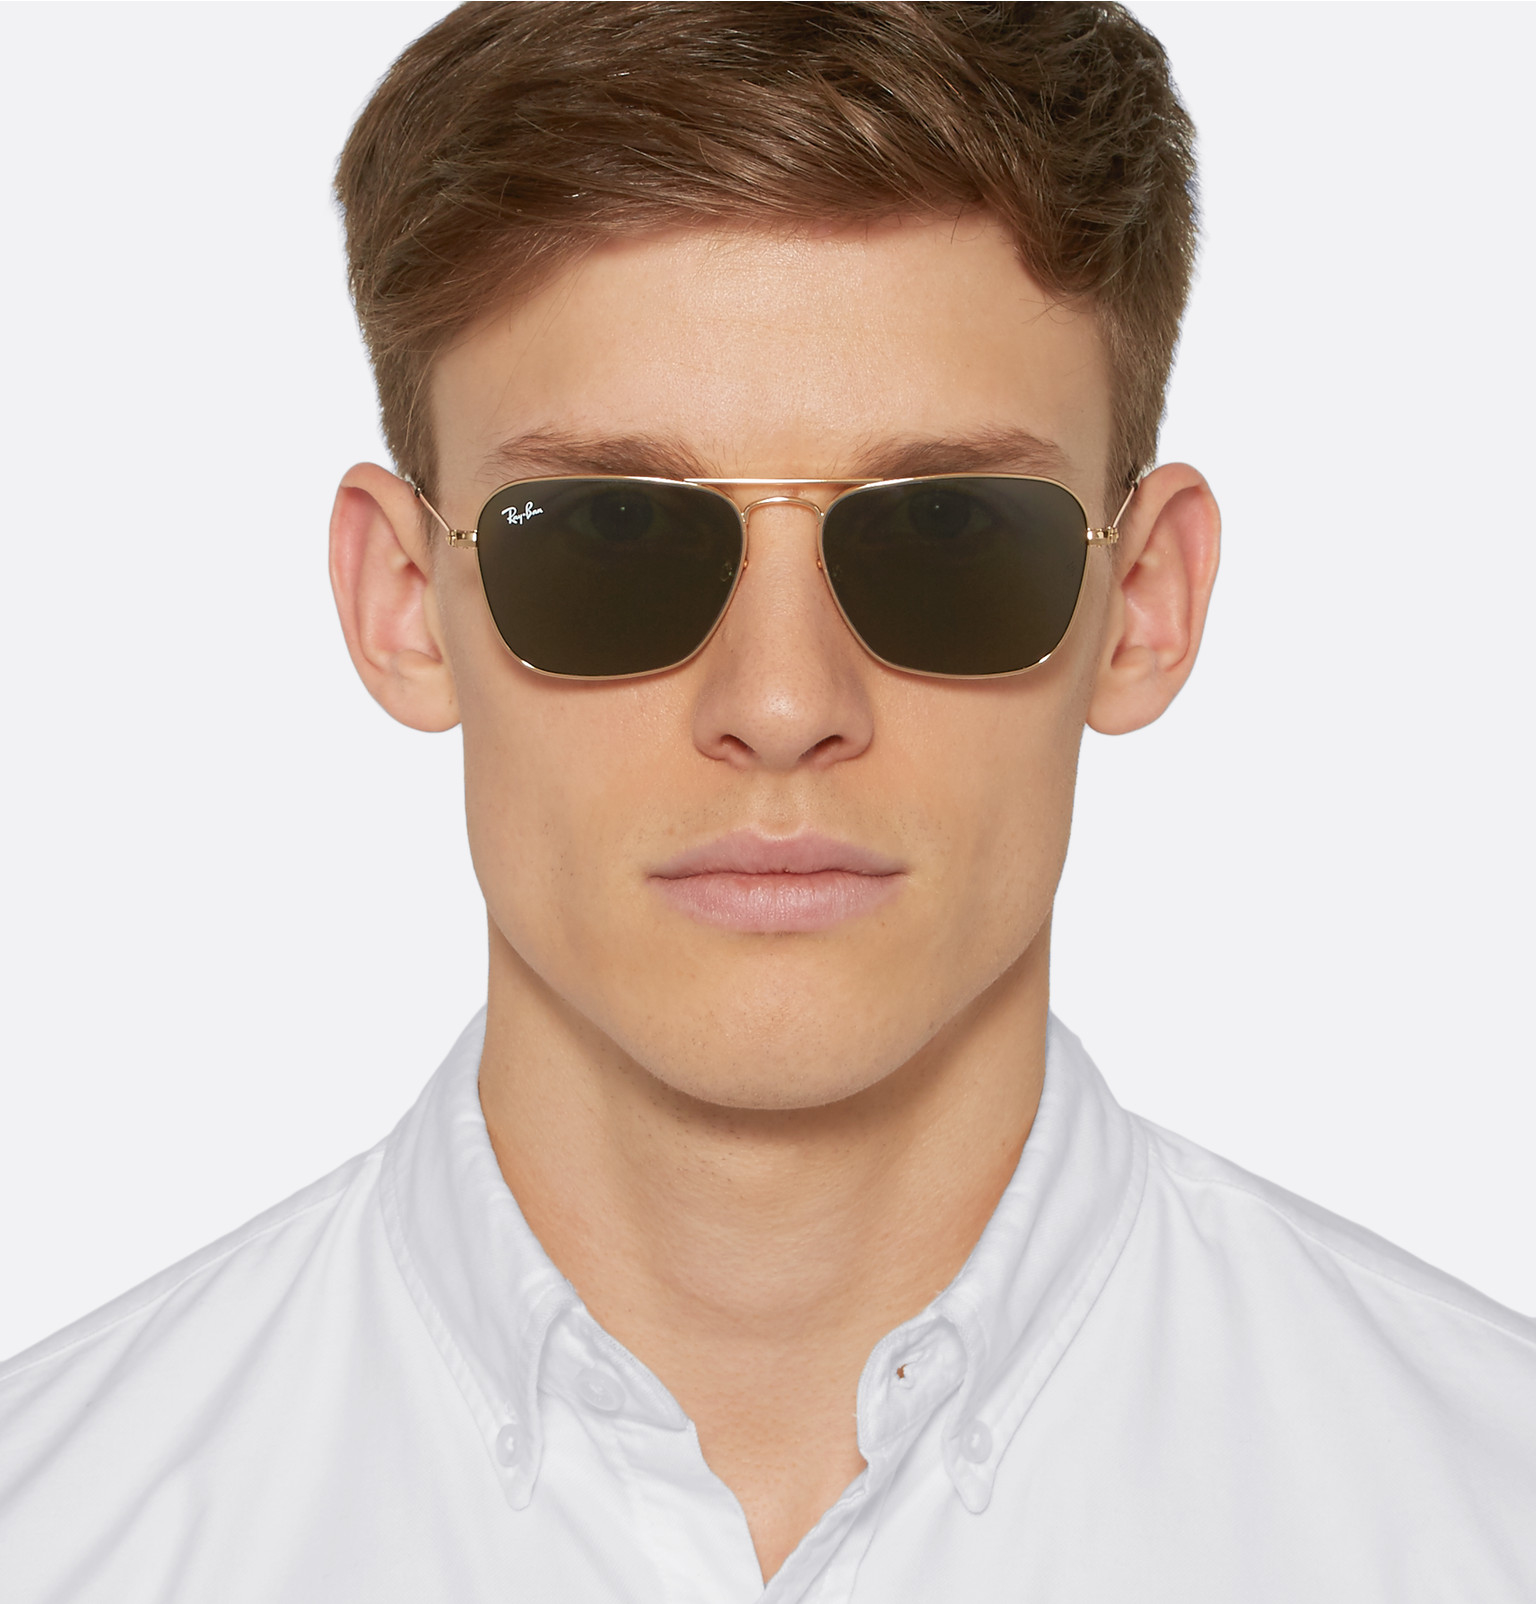 hair style for boys ban 5828 ban glasses gallo 6367